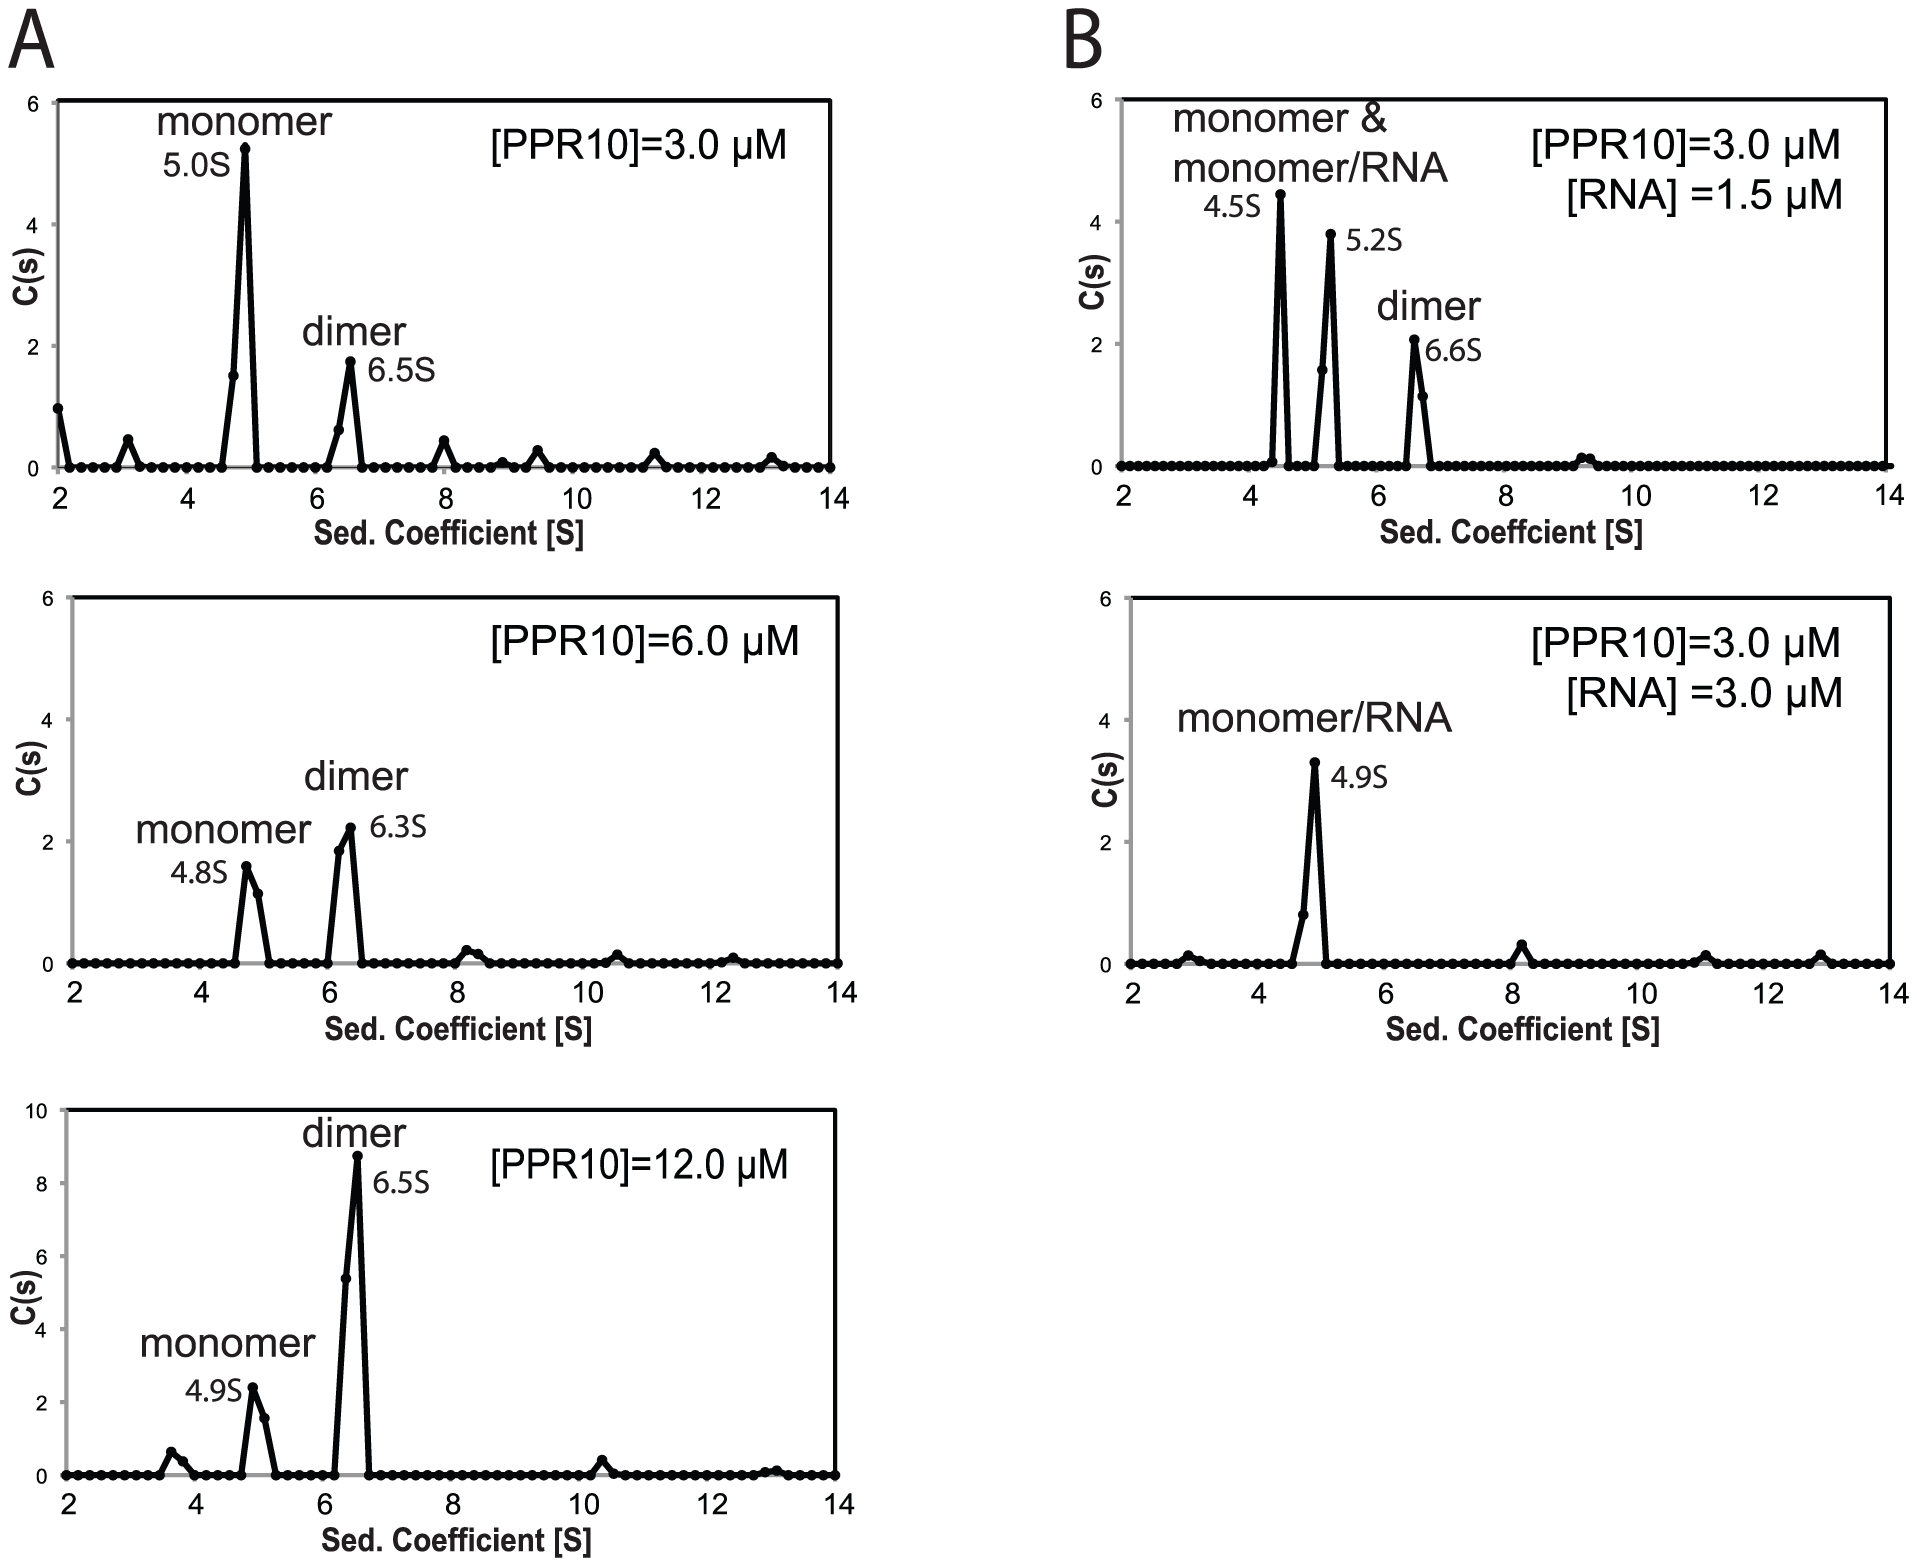 Sedimentation Velocity Analytical Ultracentrifugation of rPPR10 and rPPR10/RNA Complexes.